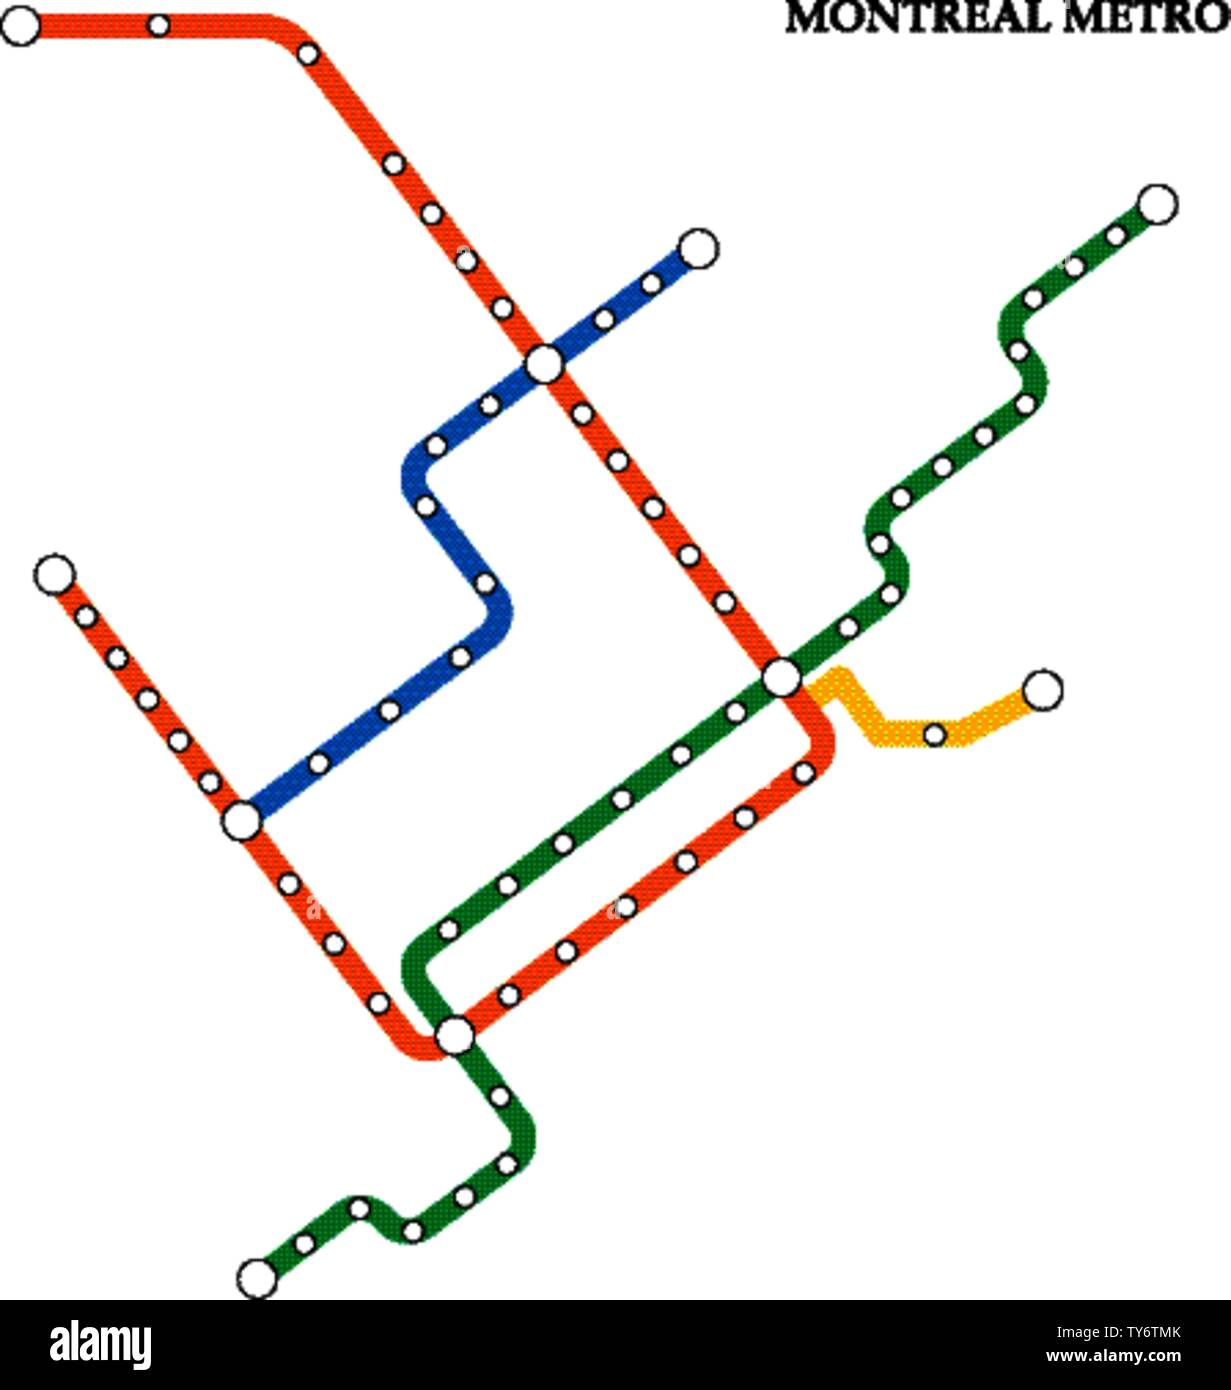 Montrrsl Subway Map.Map Of The Montreal Metro Subway Template Of City Transportation